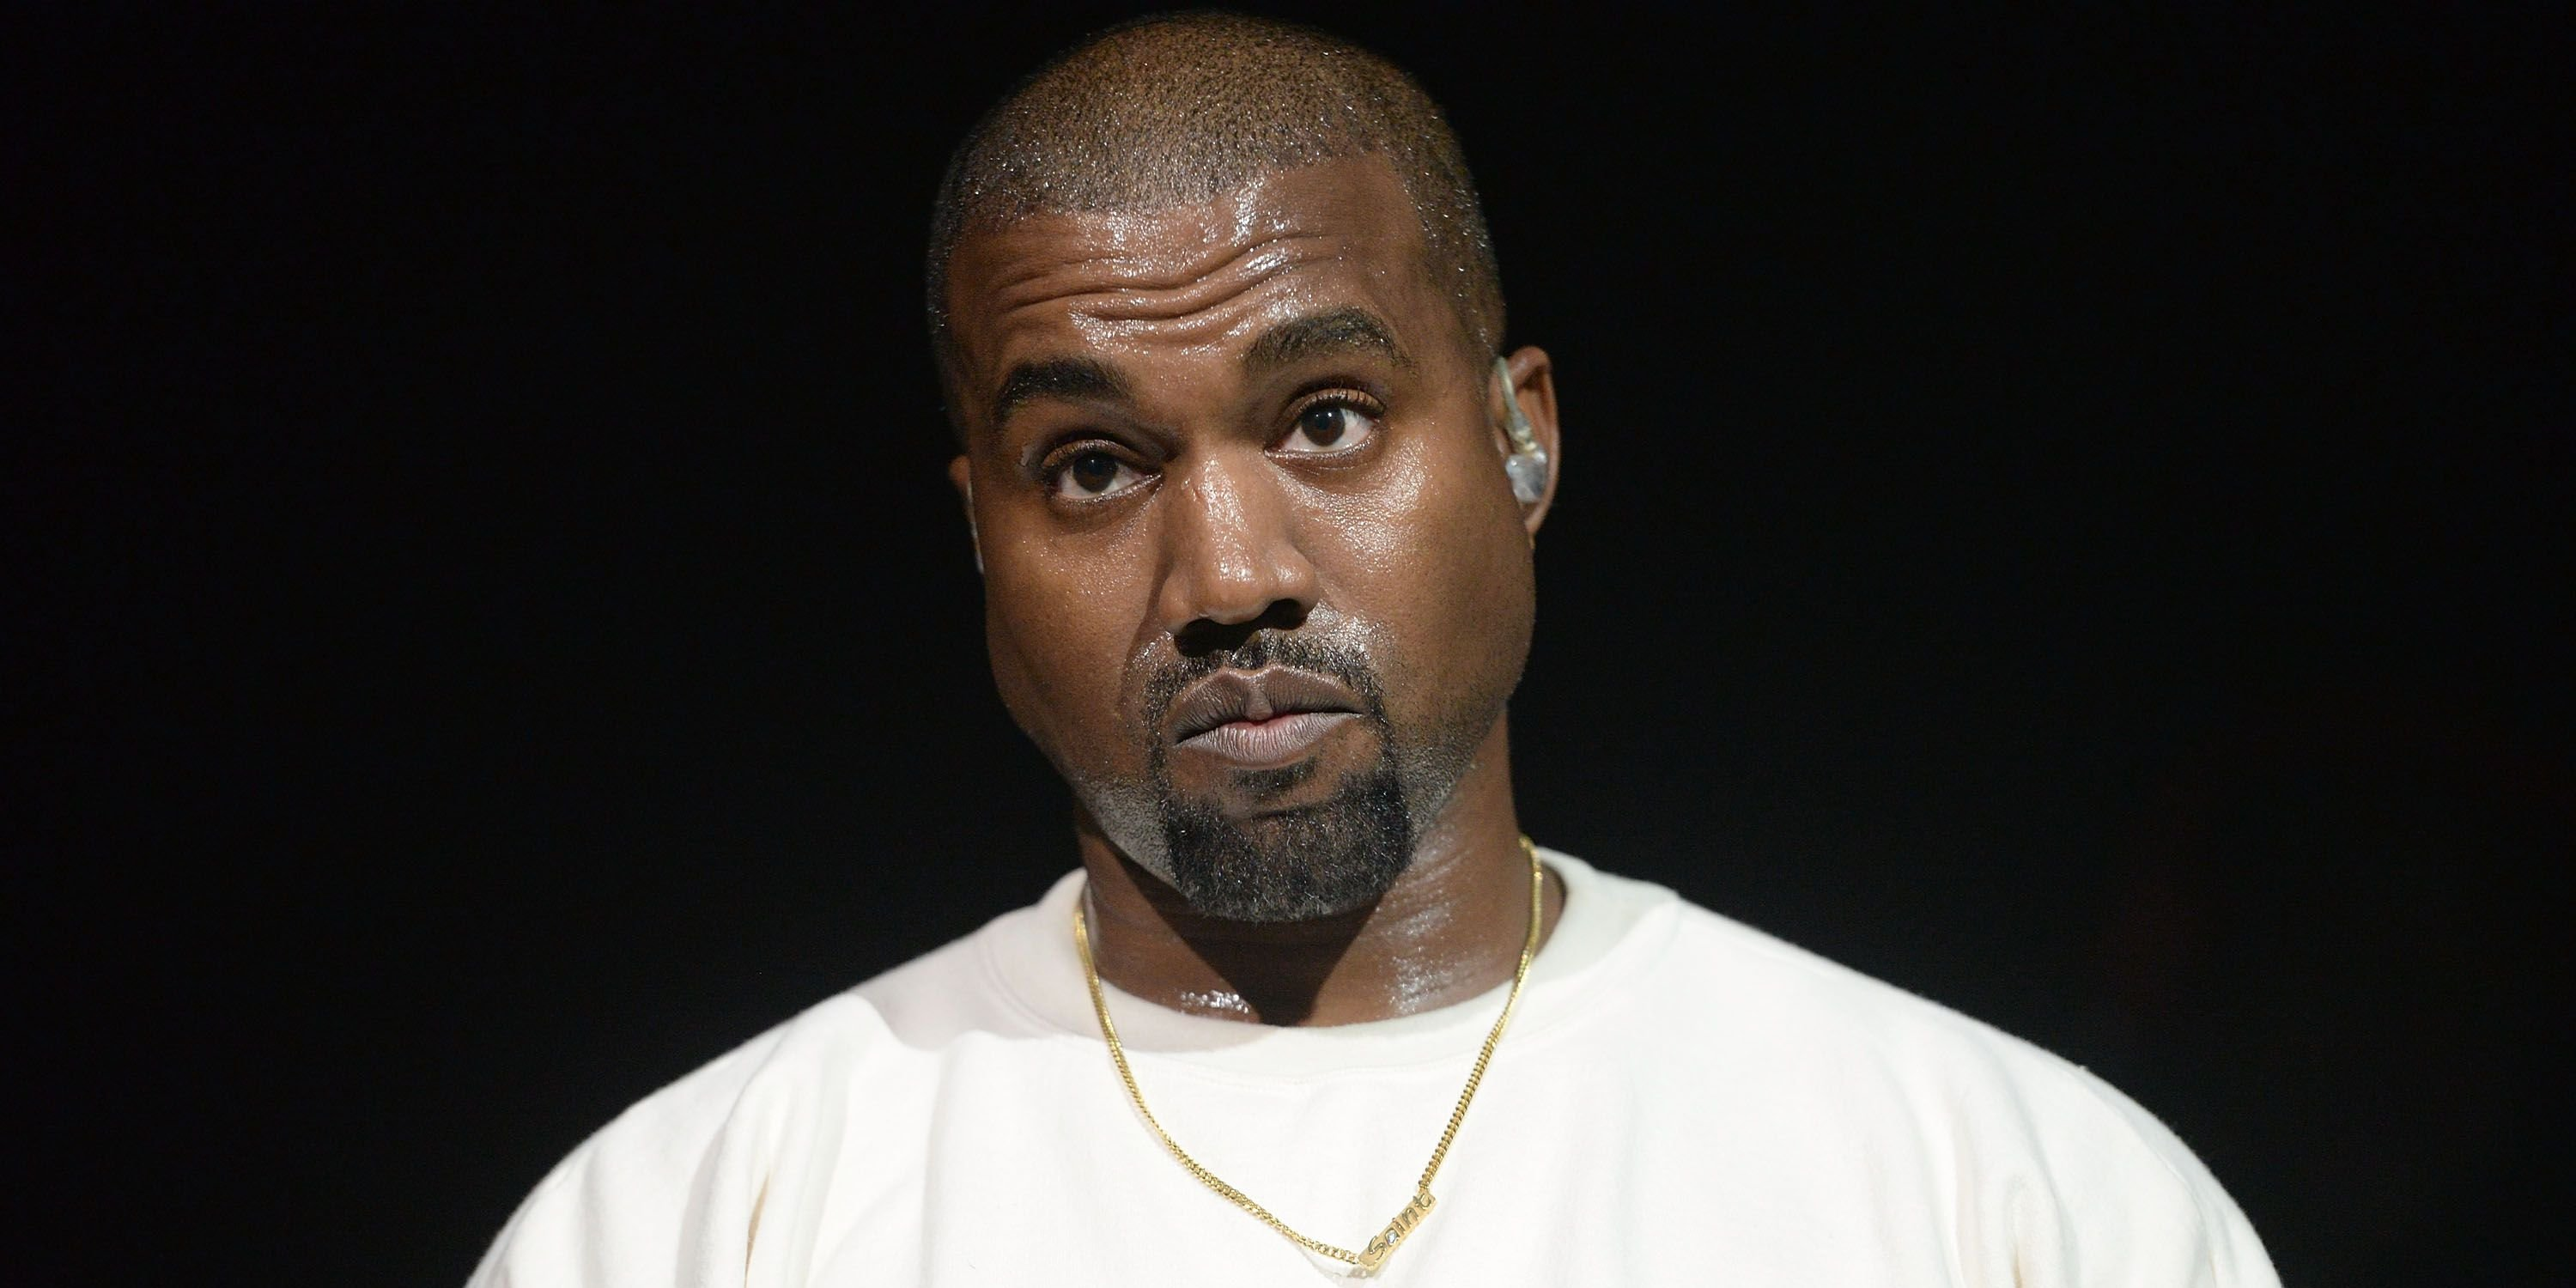 Kanye West's Celebrity Friends Are Unfollowing Him on Twitter in Droves